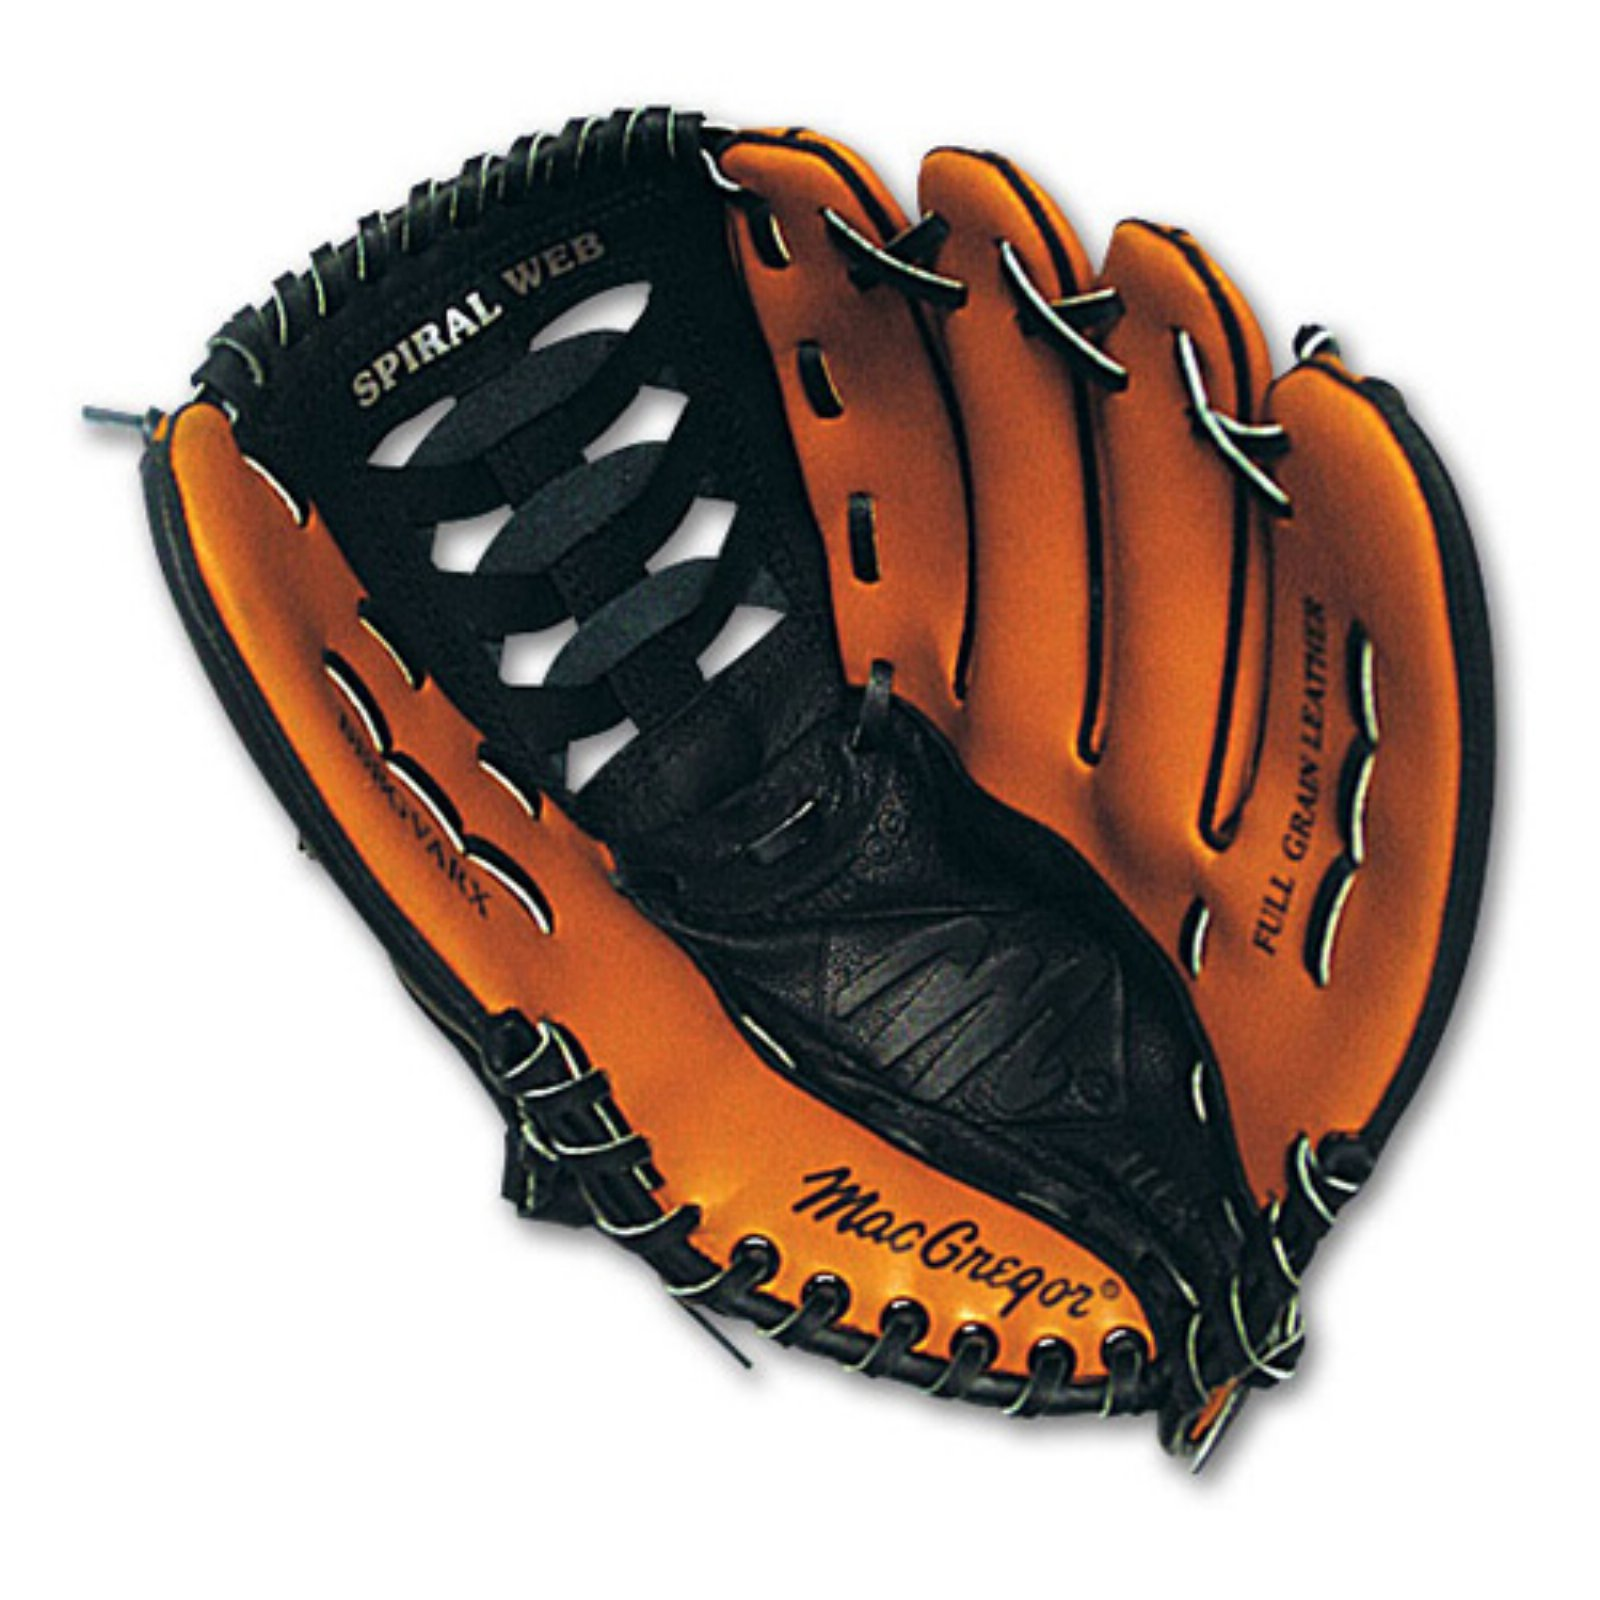 MacGregor 12-1/2'' Fielder's Glove, Left Hand Throw